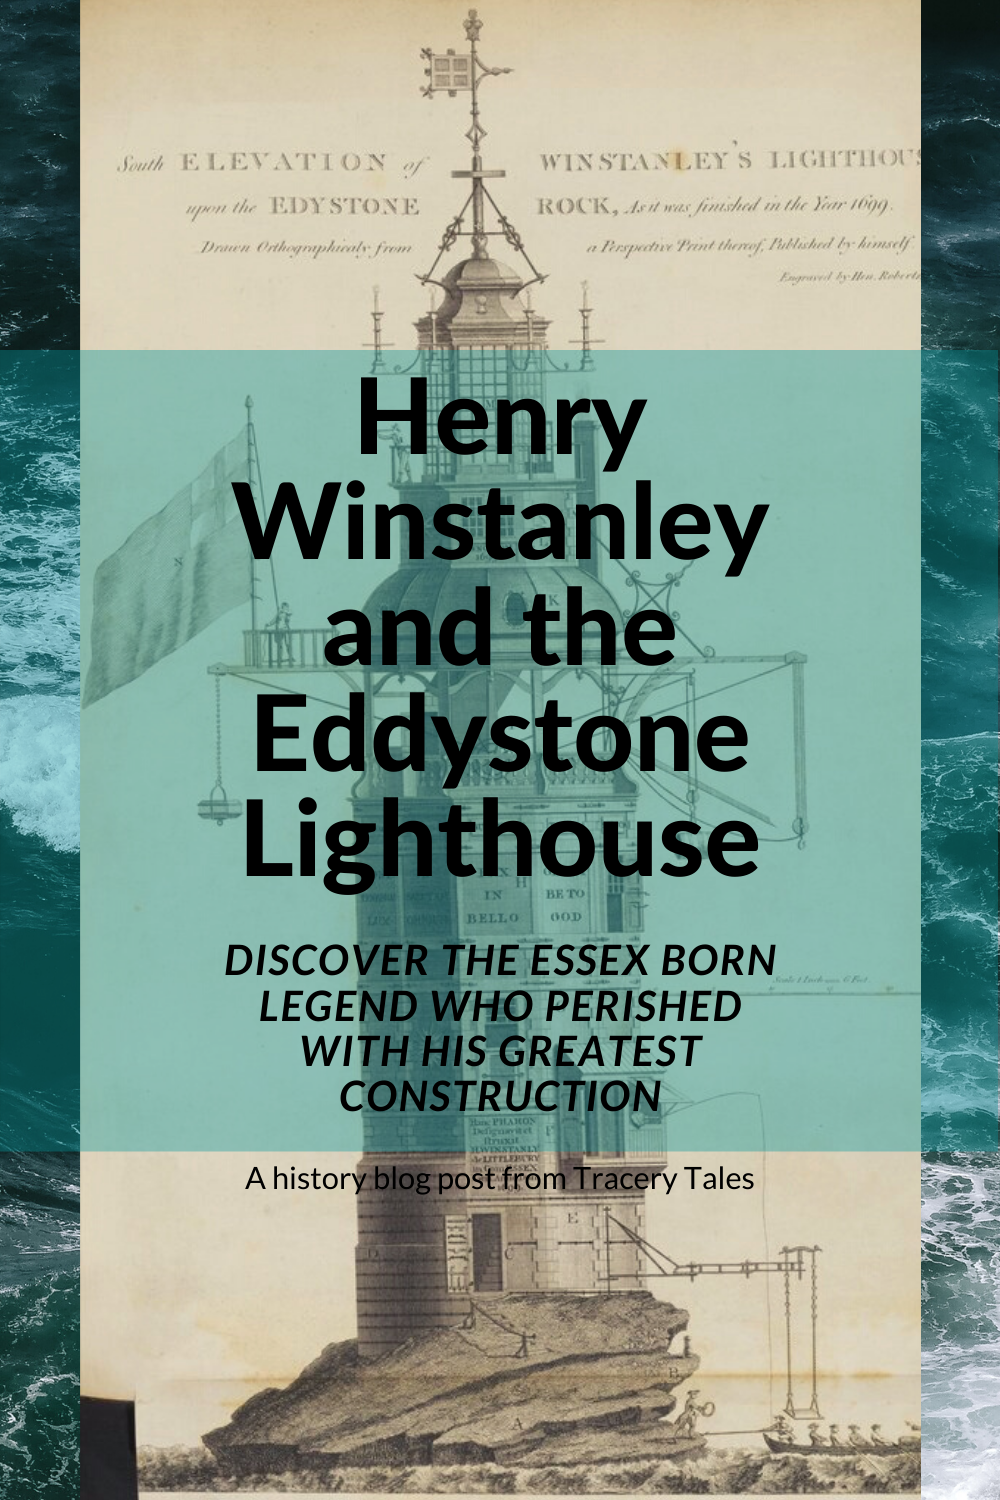 Henry Winstanley and the Eddystone Lighthouse - discover an Essex born Legend who perished with his greatest construction